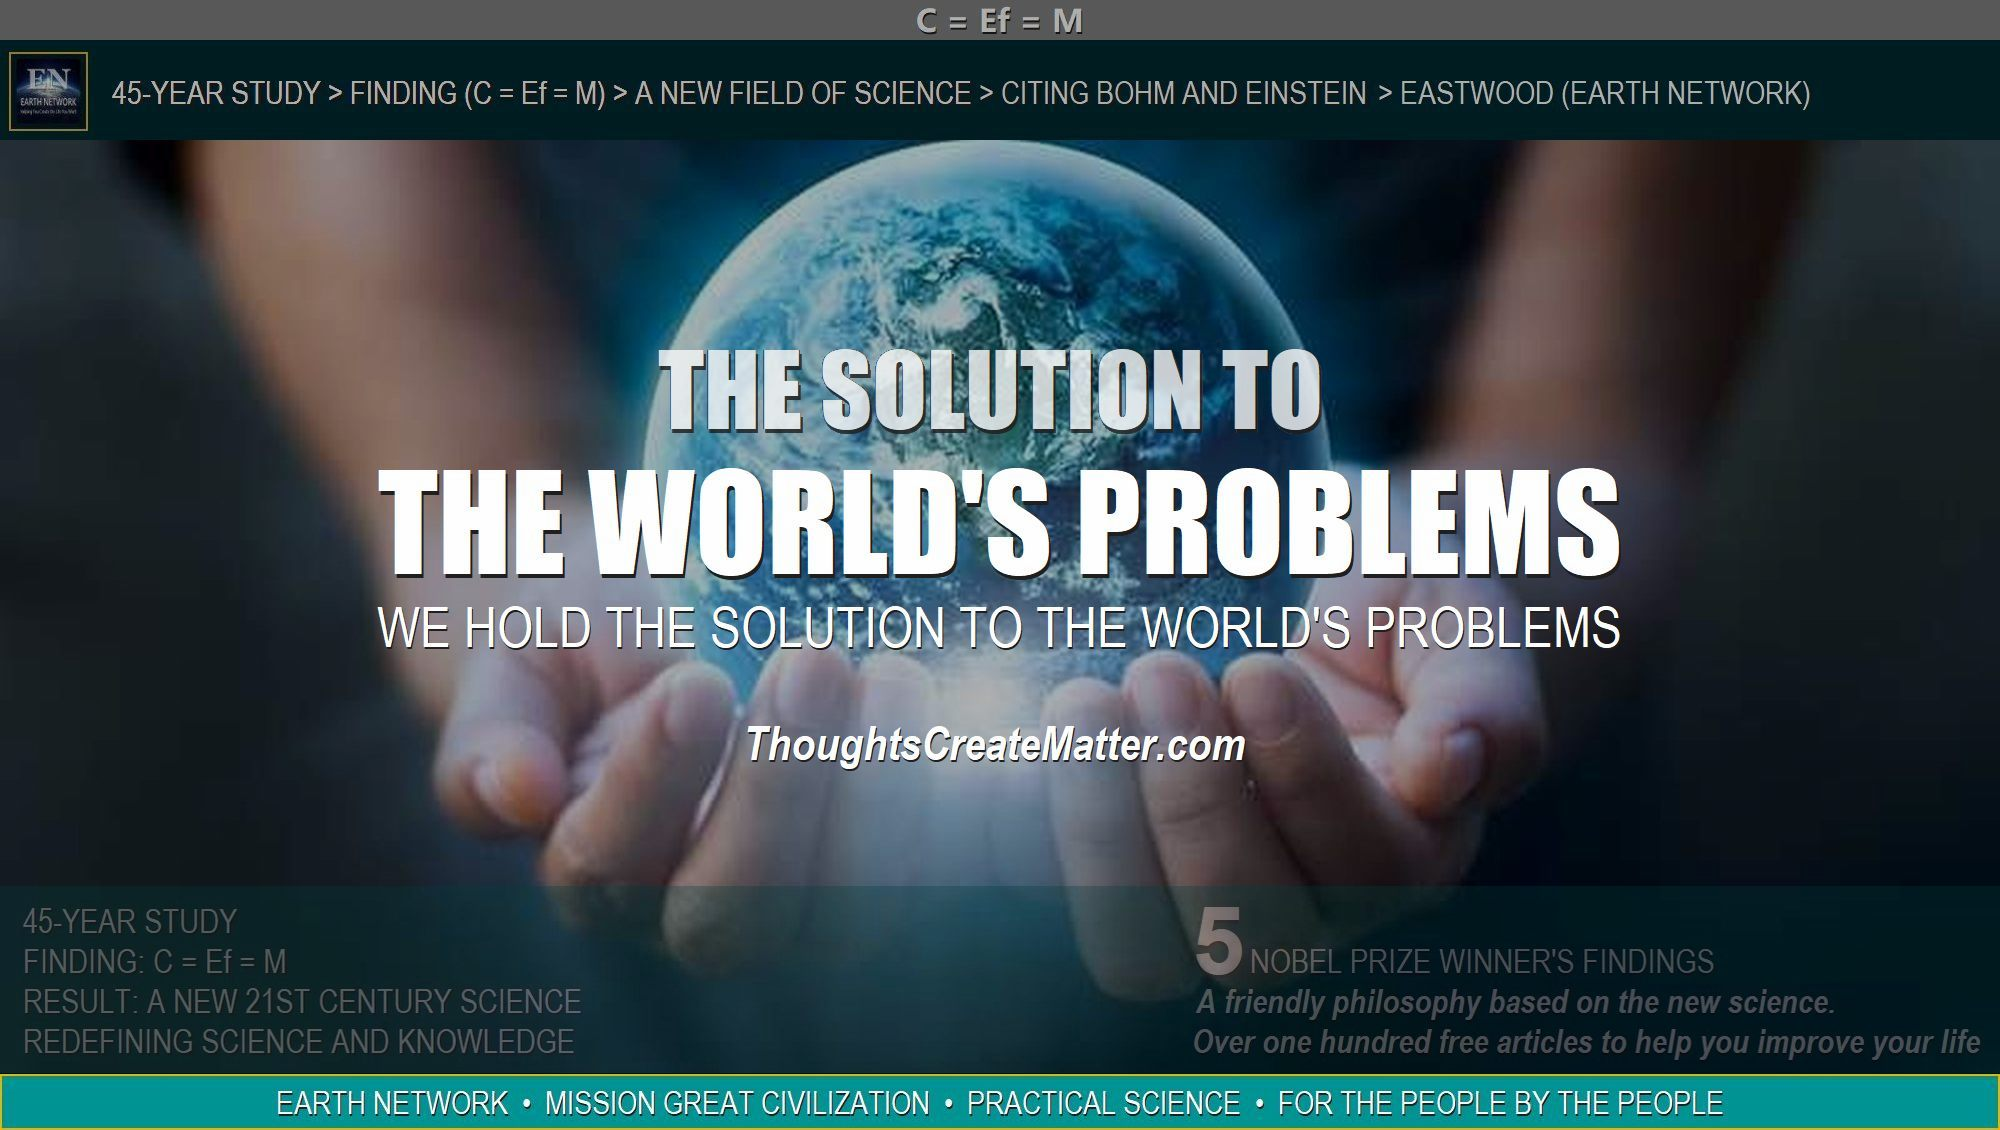 Earth in hands depicts that we have the solution to all the world's problems